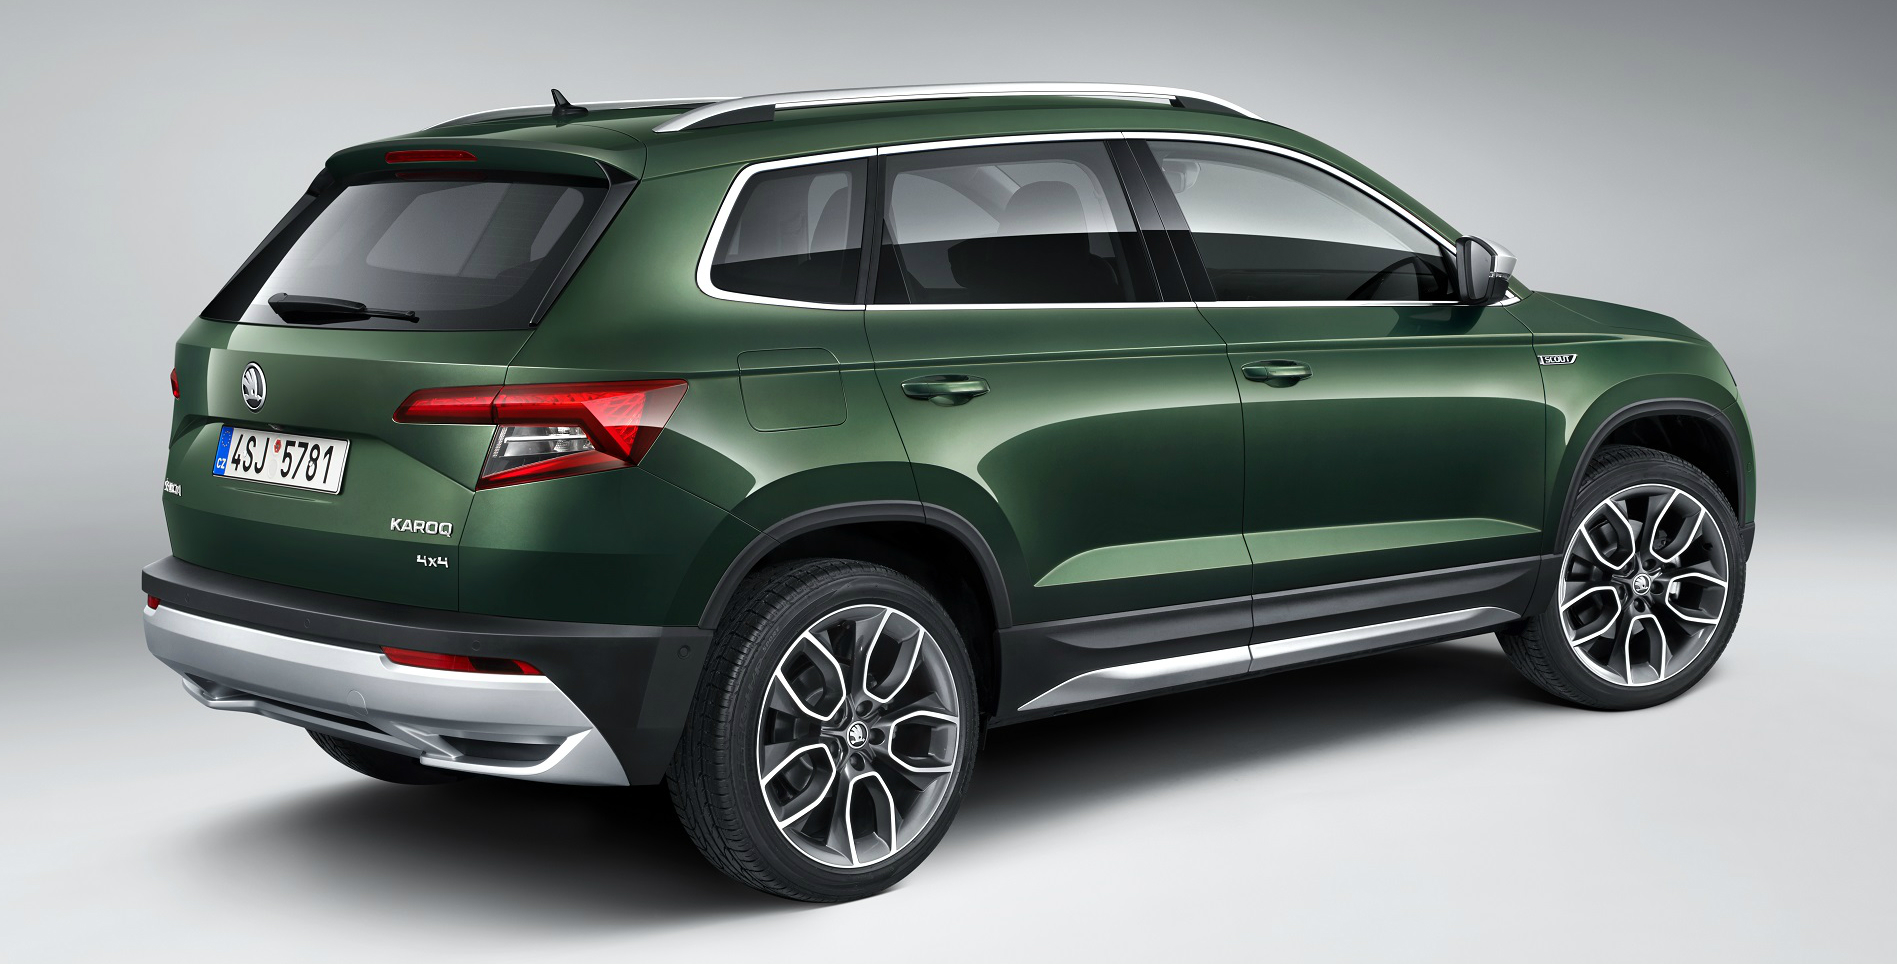 As with all Skoda Scout models, the Karoq Scout comes with four-wheel-drive as standard in addition to sporting a powerful off-road look.